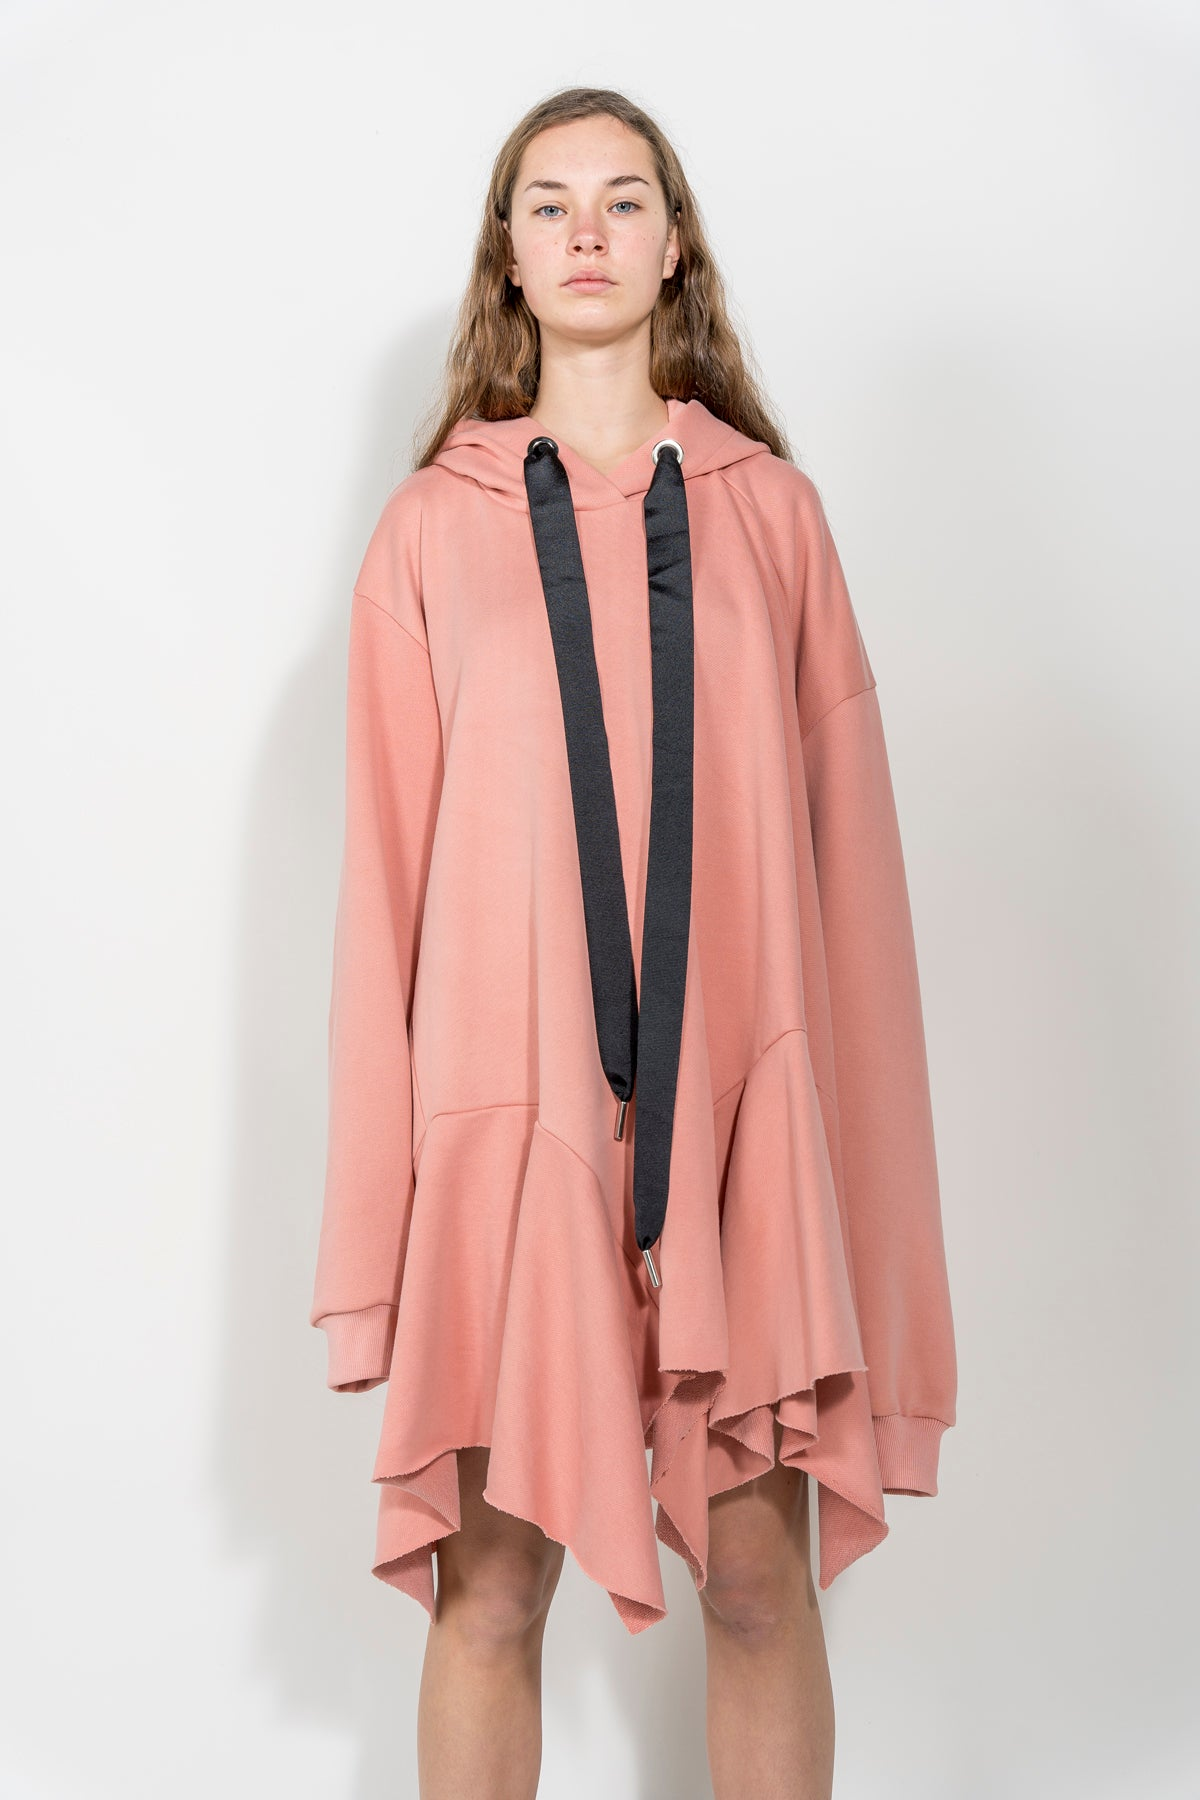 PINK ASYMMETRIC HOODIE DRESS MARQUES ALMEIDA